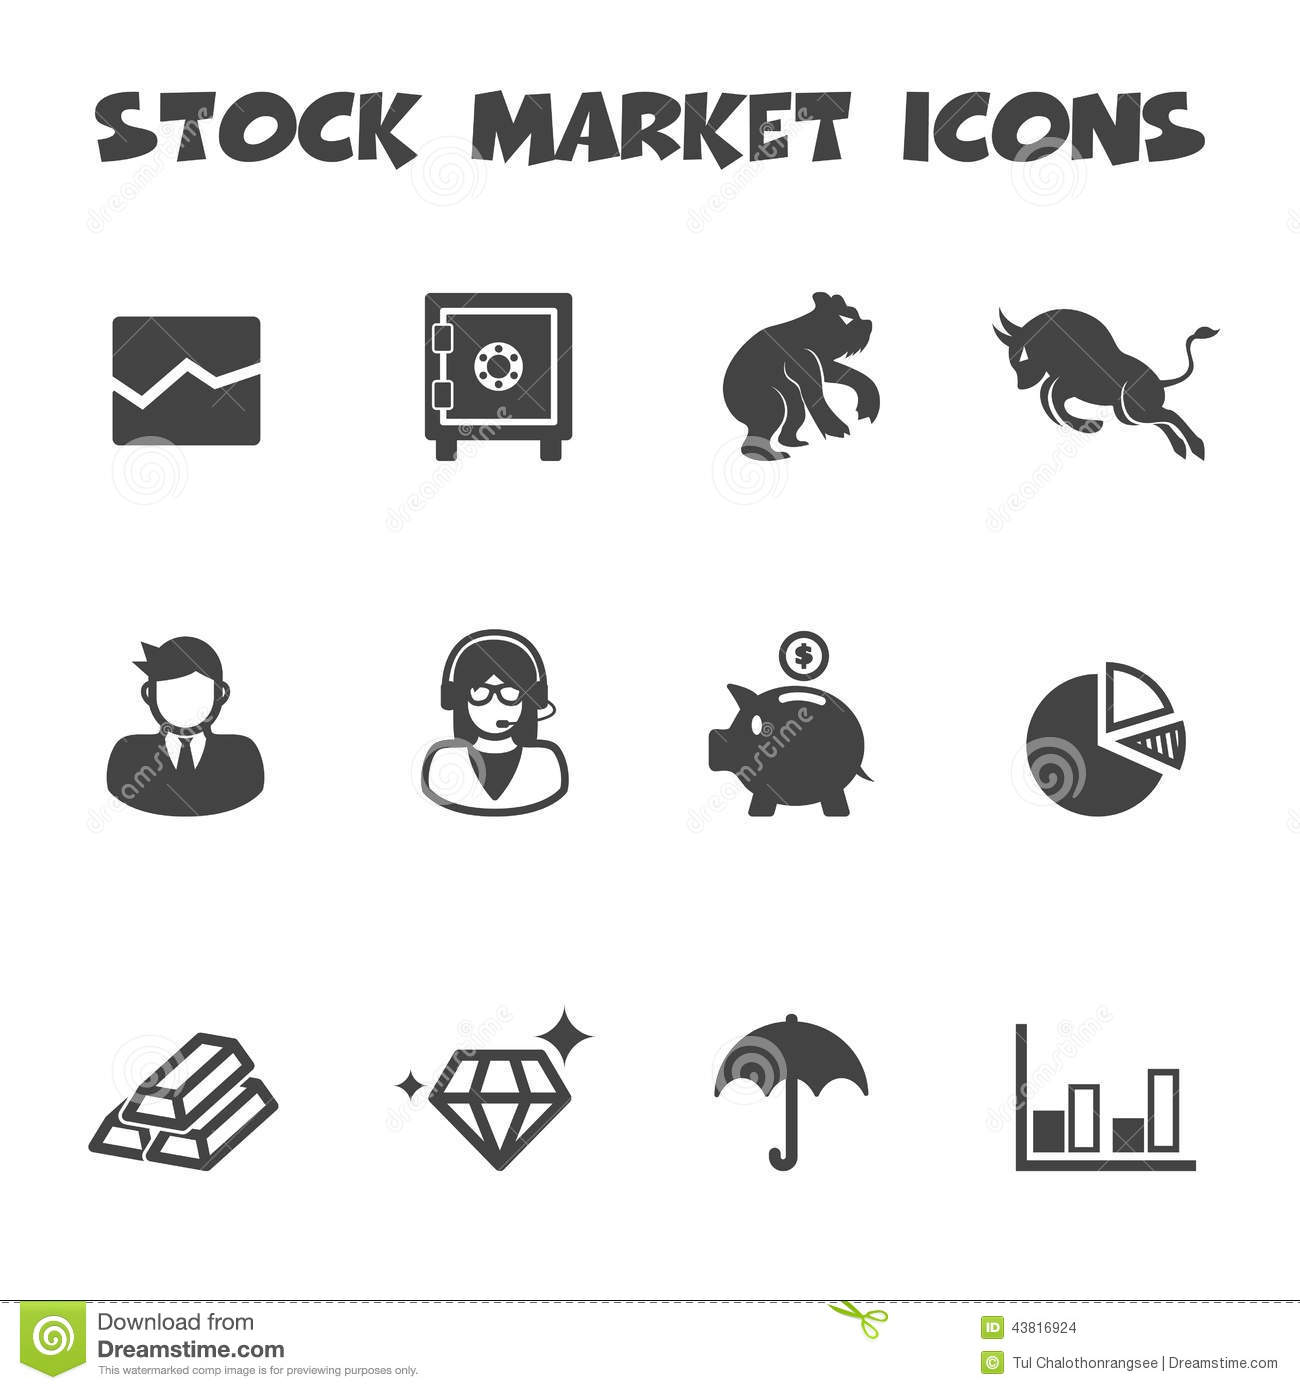 Stock market icons stock vector. Illustration of